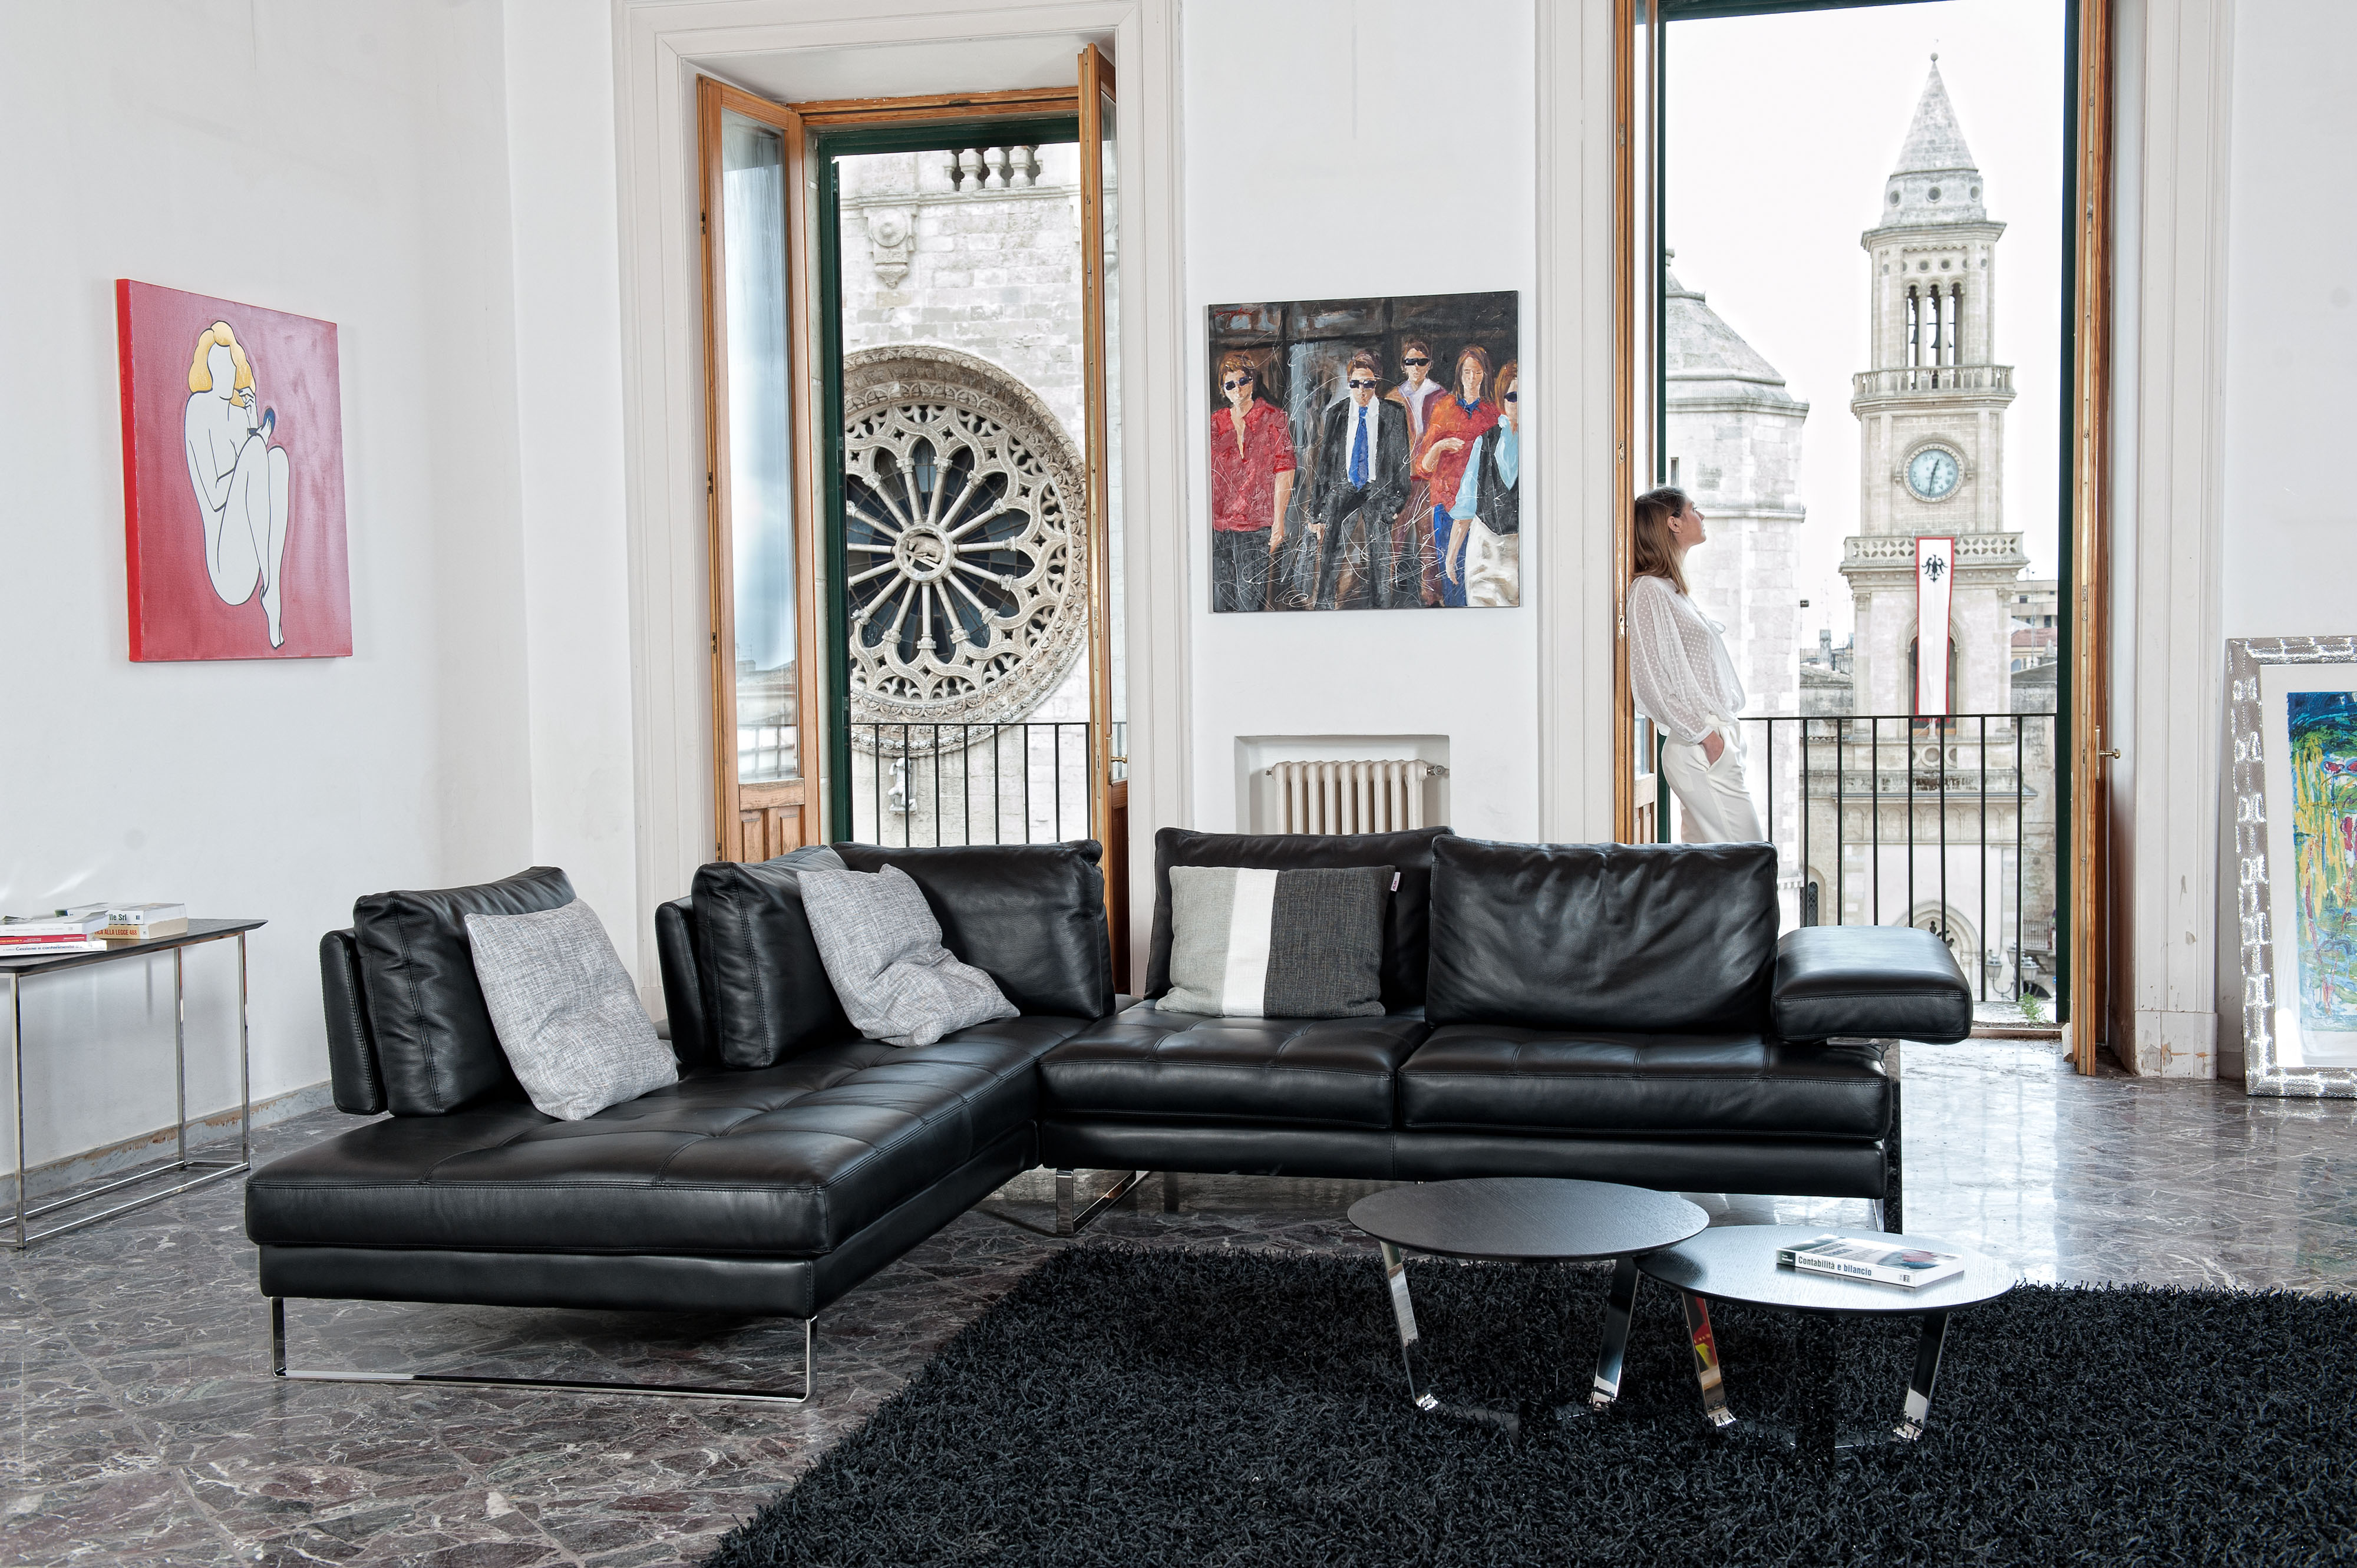 Overnice Full Italian Leather Sectionals with Pillows